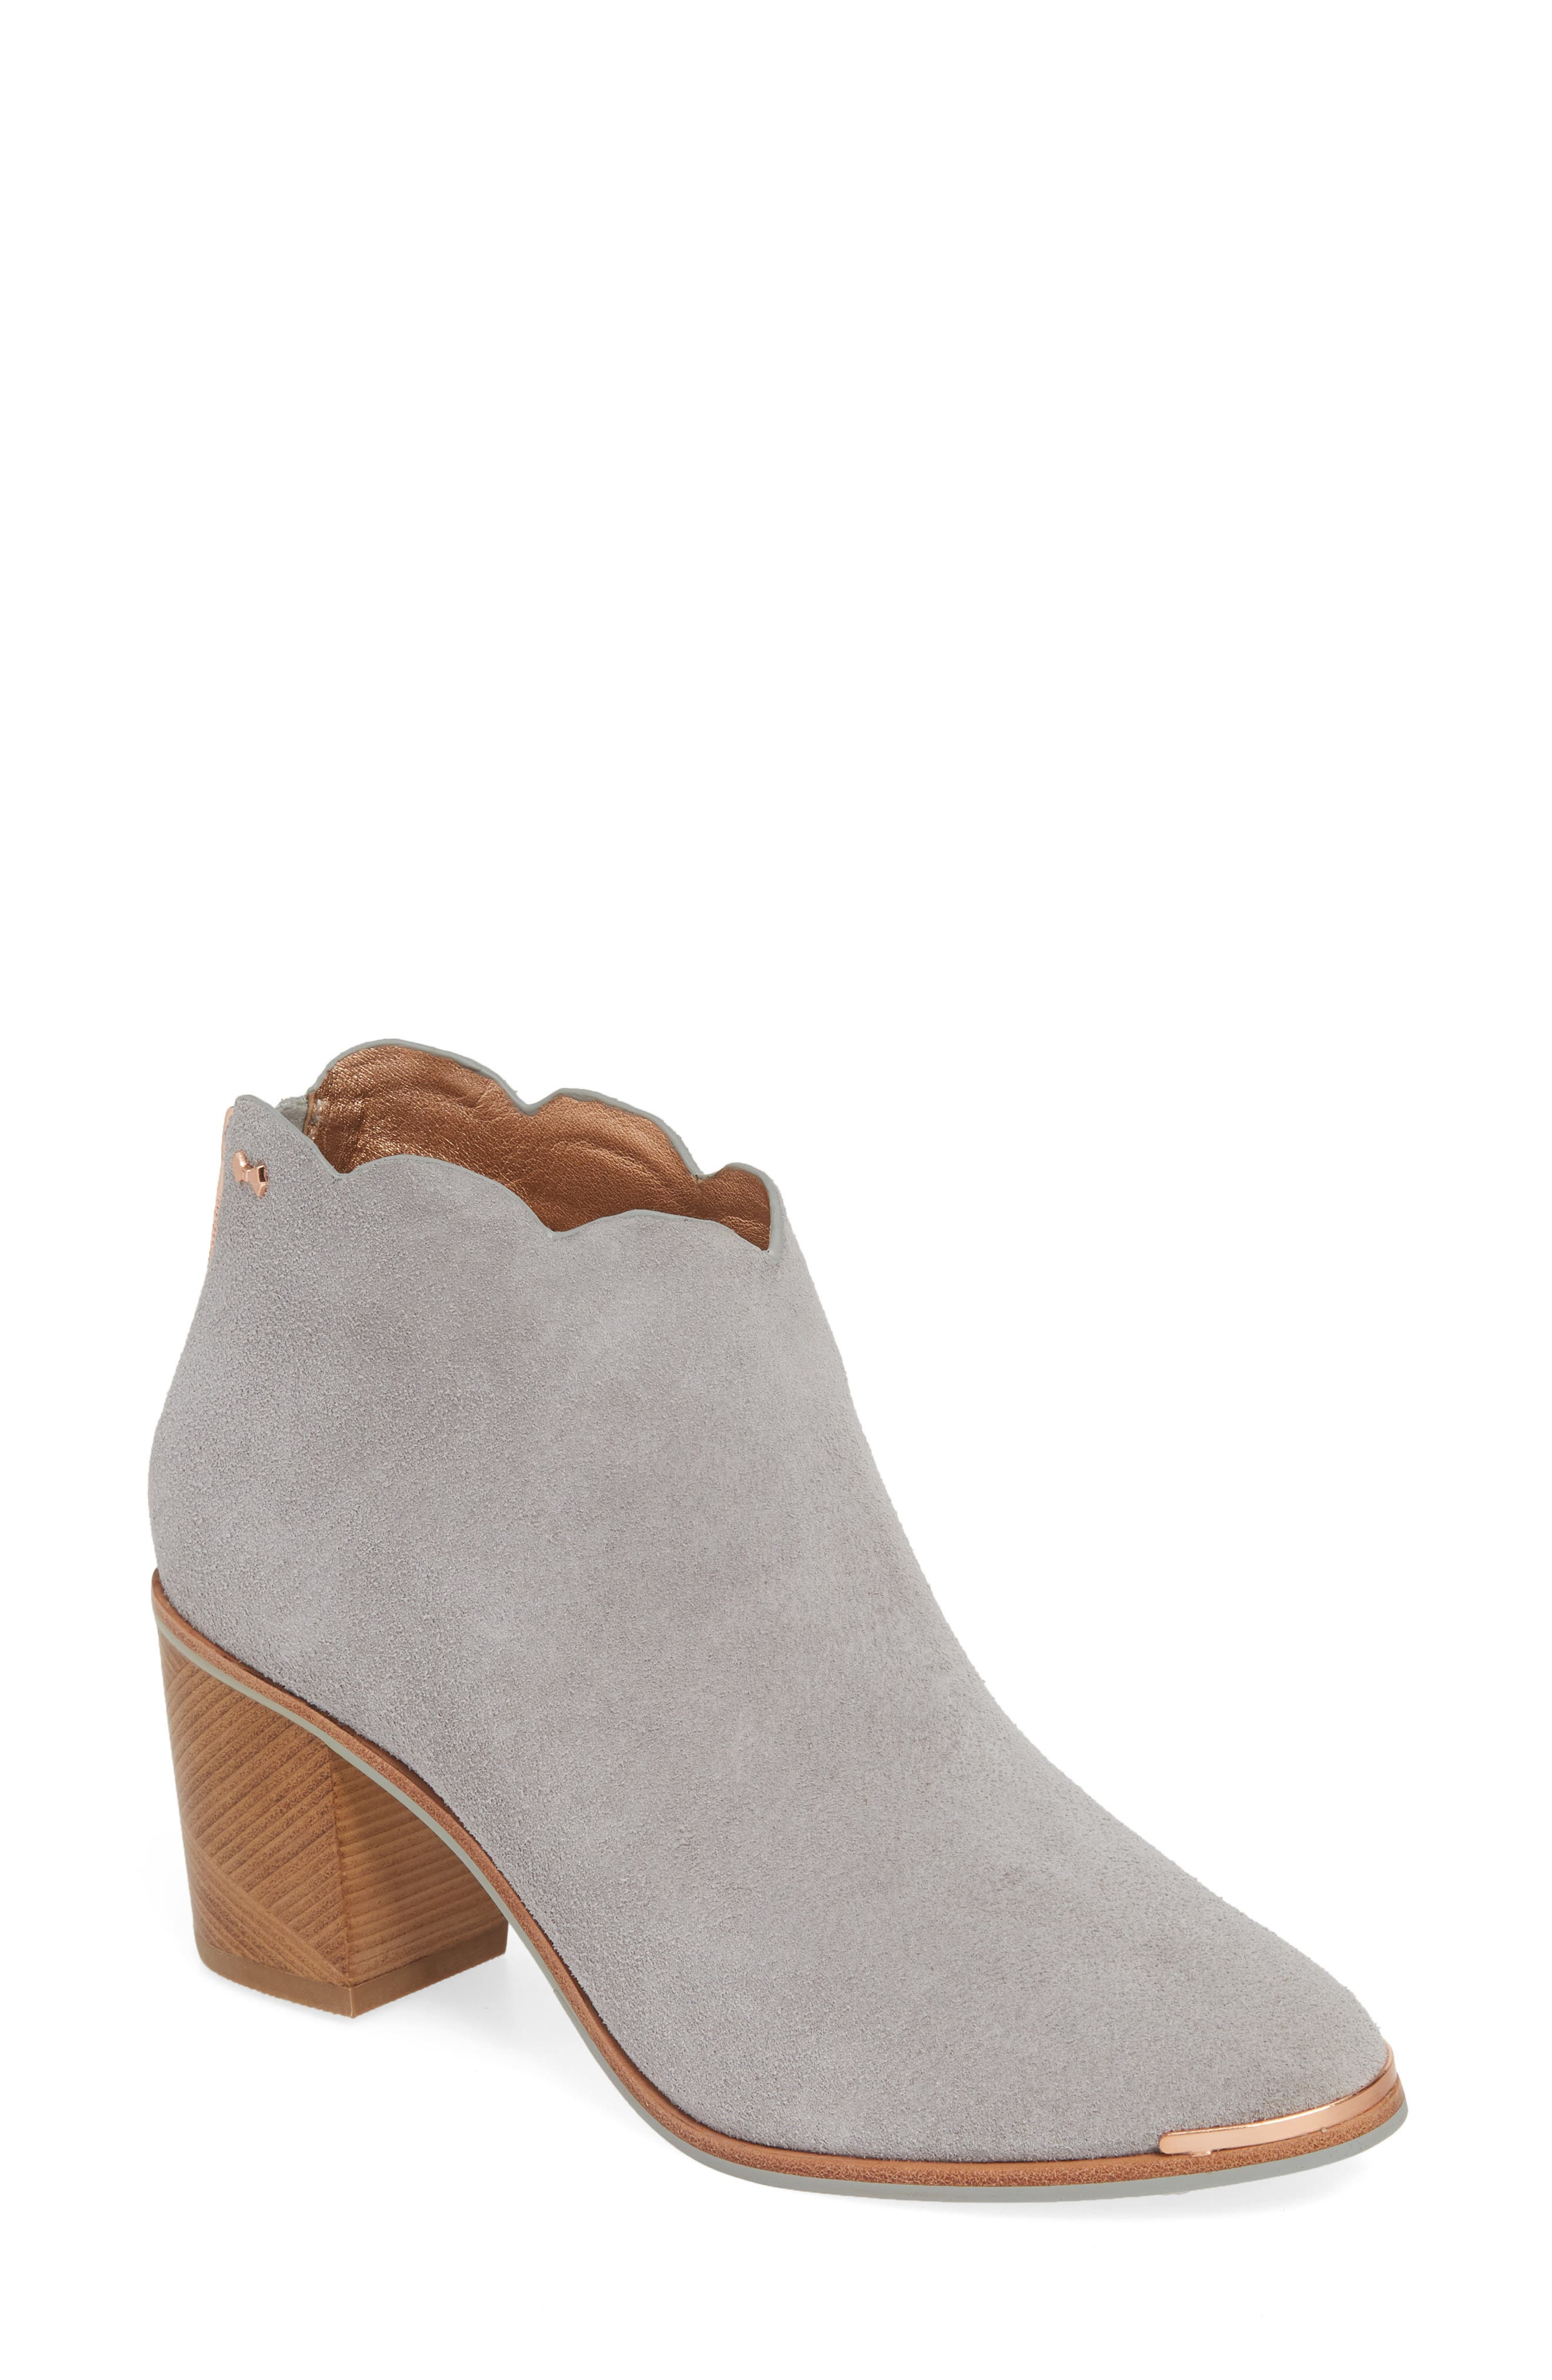 3f6cf8a4e Women s Ted Baker London Booties   Ankle Boots